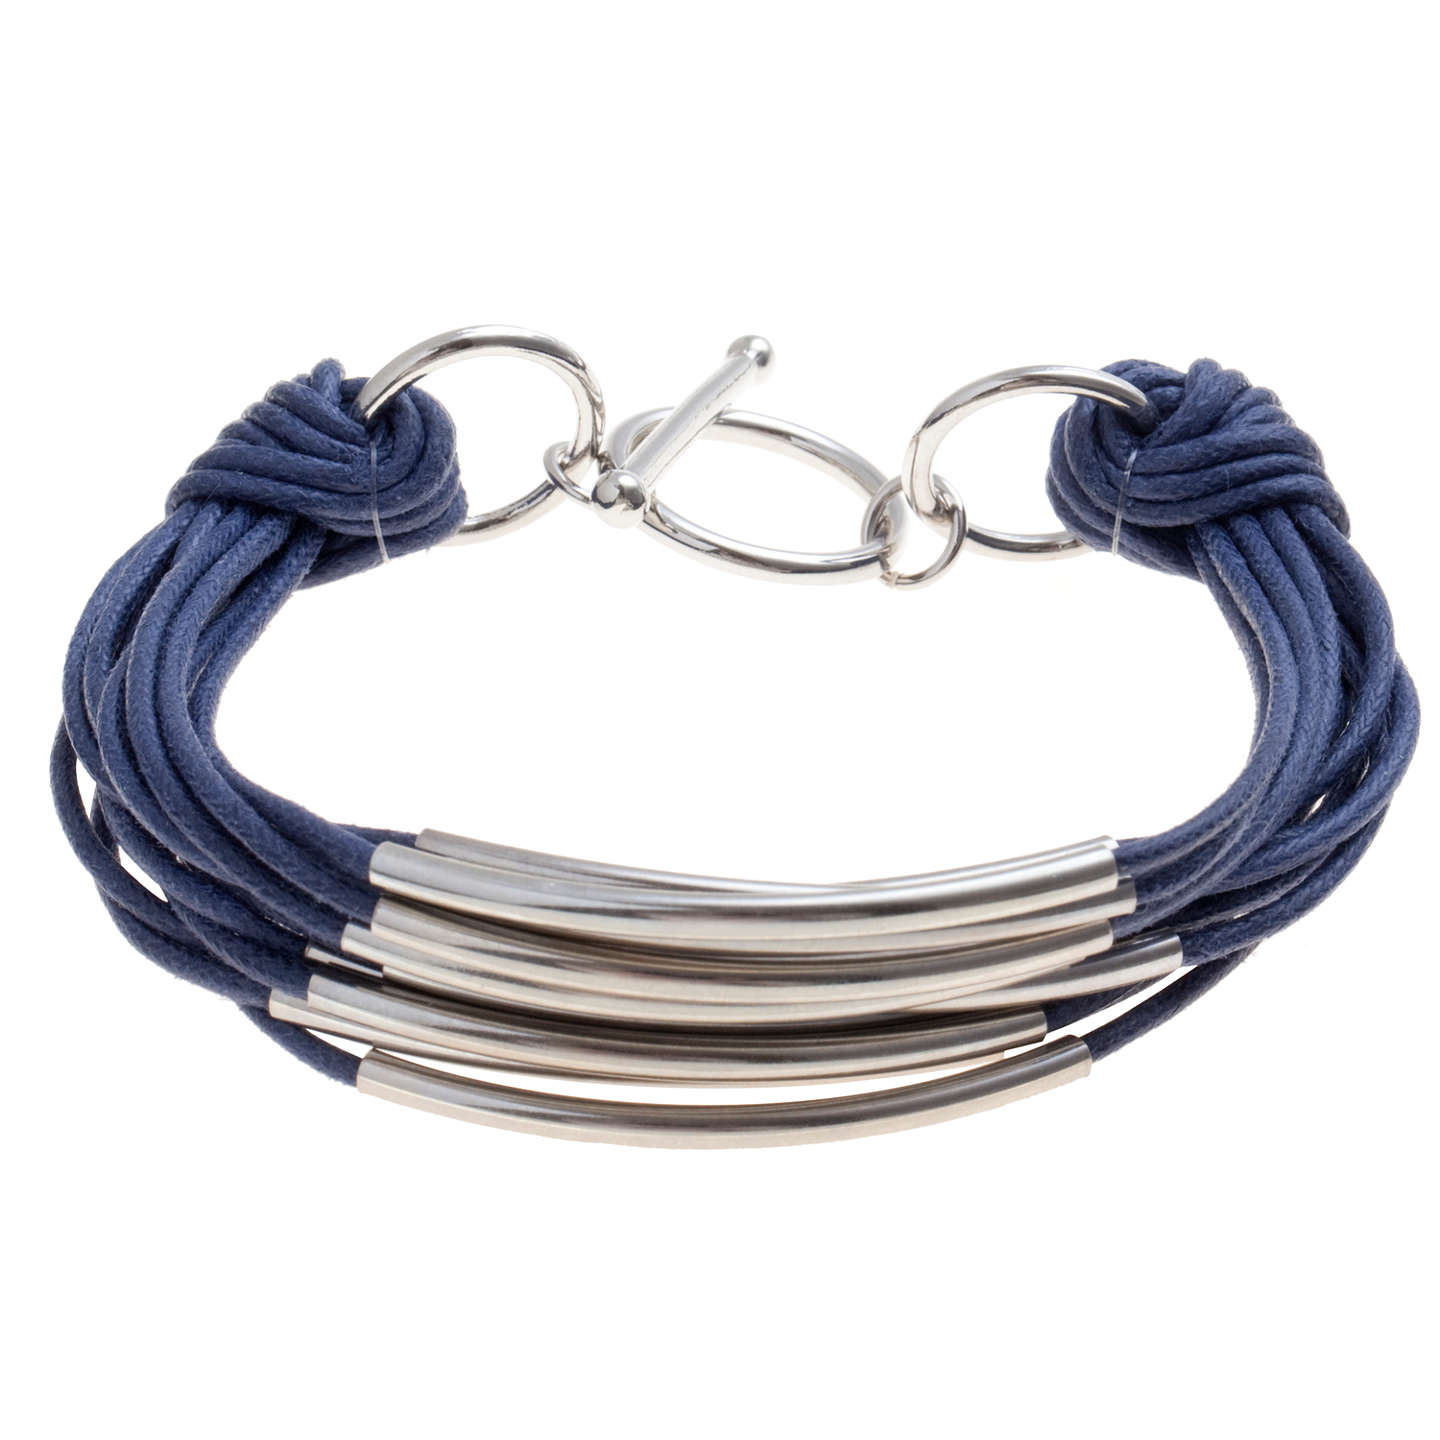 fashion navy bracelet gold products leather b jewelry accessories dark nail sfc mister